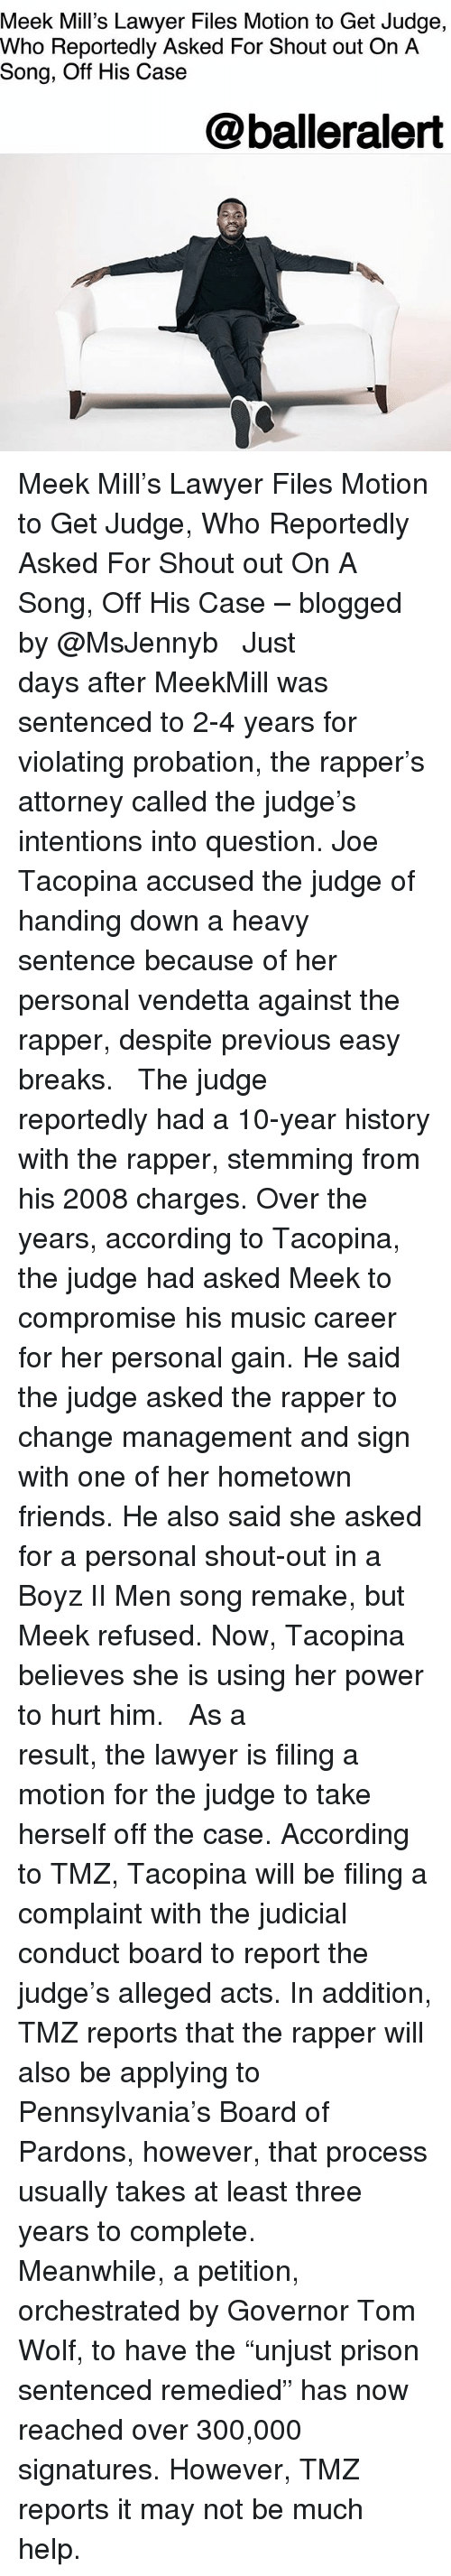 "Friends, Lawyer, and Meek Mill: Meek Mill's Lawyer Files Motion to Get Judge,  Who Reportedly Asked For Shout out On A  Song, Off His Case  @balleralert Meek Mill's Lawyer Files Motion to Get Judge, Who Reportedly Asked For Shout out On A Song, Off His Case – blogged by @MsJennyb ⠀⠀⠀⠀⠀⠀⠀ ⠀⠀⠀⠀⠀⠀⠀ Just days after MeekMill was sentenced to 2-4 years for violating probation, the rapper's attorney called the judge's intentions into question. Joe Tacopina accused the judge of handing down a heavy sentence because of her personal vendetta against the rapper, despite previous easy breaks. ⠀⠀⠀⠀⠀⠀⠀ ⠀⠀⠀⠀⠀⠀⠀ The judge reportedly had a 10-year history with the rapper, stemming from his 2008 charges. Over the years, according to Tacopina, the judge had asked Meek to compromise his music career for her personal gain. He said the judge asked the rapper to change management and sign with one of her hometown friends. He also said she asked for a personal shout-out in a Boyz II Men song remake, but Meek refused. Now, Tacopina believes she is using her power to hurt him. ⠀⠀⠀⠀⠀⠀⠀ ⠀⠀⠀⠀⠀⠀⠀ As a result, the lawyer is filing a motion for the judge to take herself off the case. According to TMZ, Tacopina will be filing a complaint with the judicial conduct board to report the judge's alleged acts. In addition, TMZ reports that the rapper will also be applying to Pennsylvania's Board of Pardons, however, that process usually takes at least three years to complete. ⠀⠀⠀⠀⠀⠀⠀ ⠀⠀⠀⠀⠀⠀⠀ Meanwhile, a petition, orchestrated by Governor Tom Wolf, to have the ""unjust prison sentenced remedied"" has now reached over 300,000 signatures. However, TMZ reports it may not be much help."